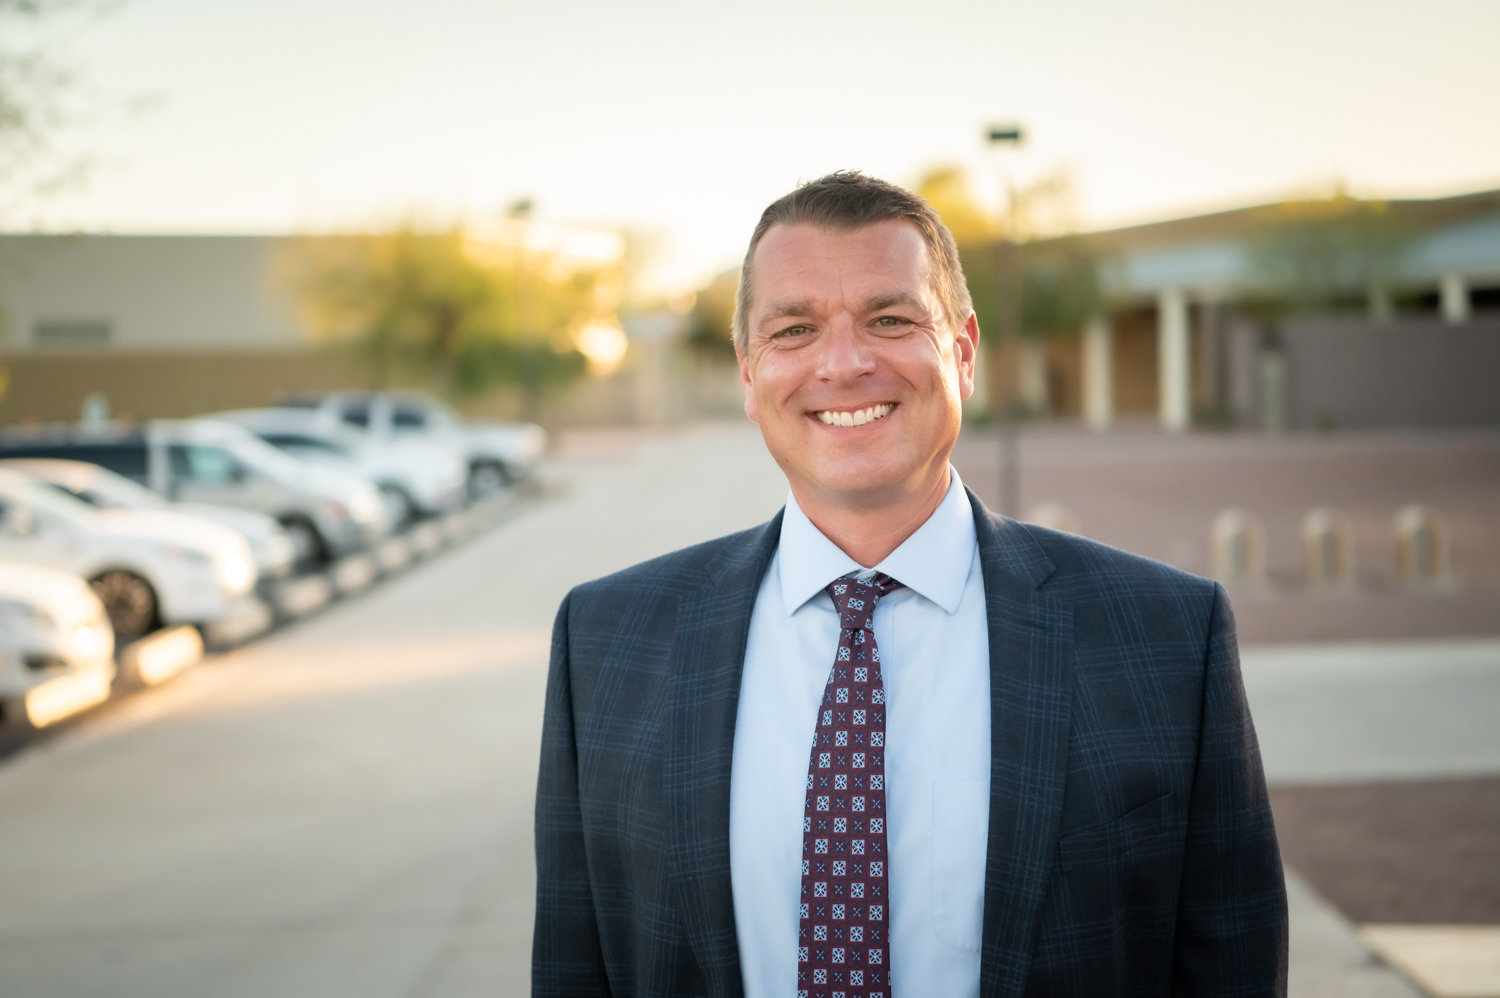 Peter Jelovic, currently the athletic director at Centennial High School in Peoria, was recently hired as athletic director at Valley Vista High School in Surprise beginning with the 2021-22 academic year.